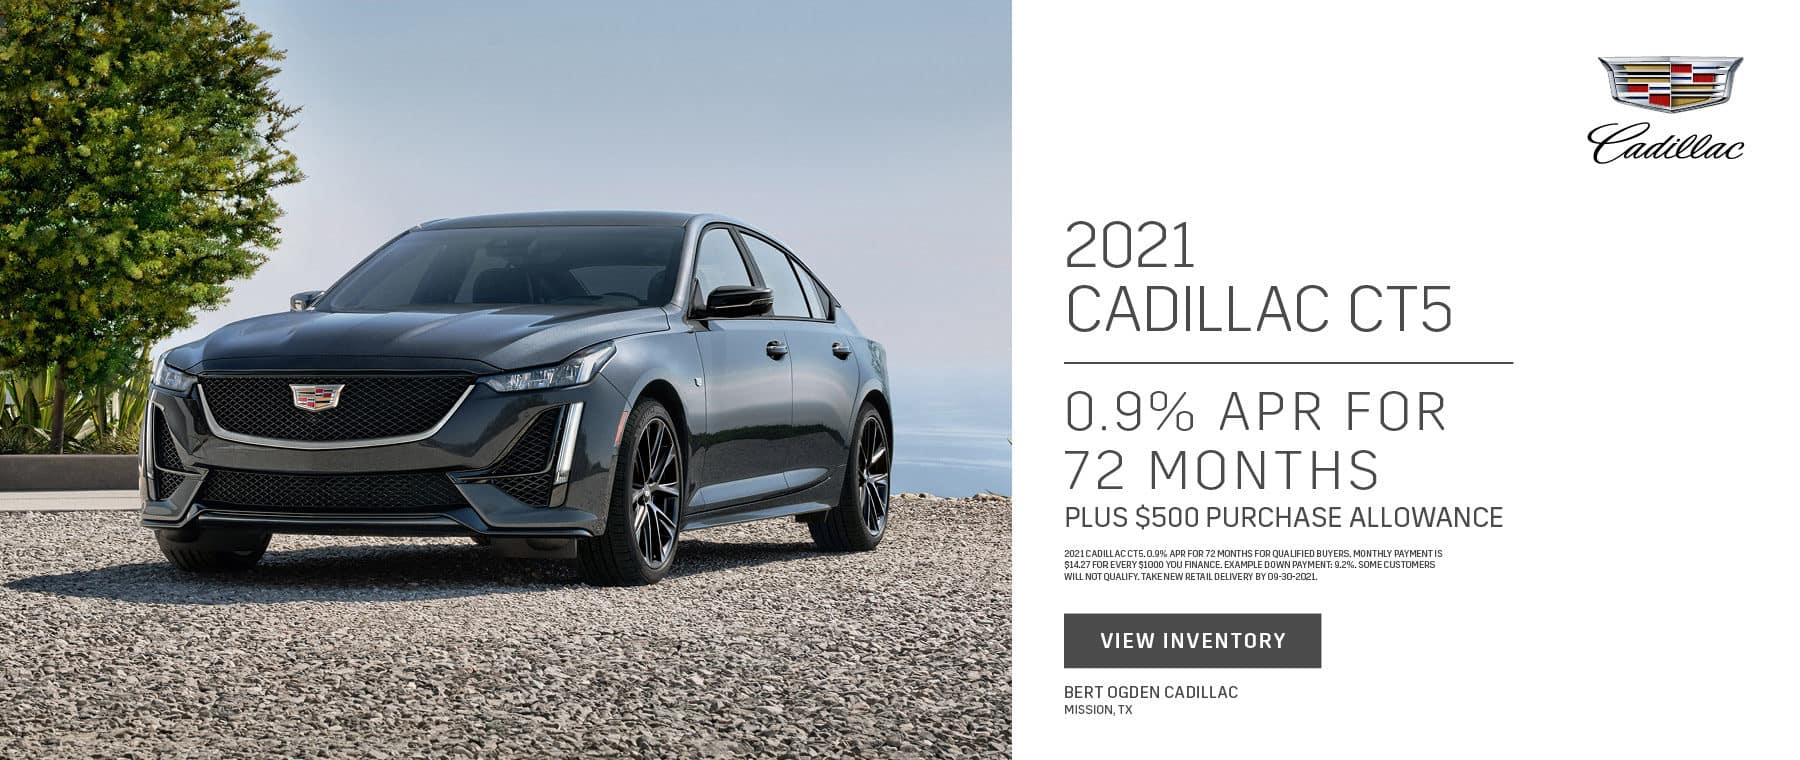 2021 Cadillac CT5 APR Offer Plus Purchase Allowance   Bert Ogden Cadillac in Mission, Texas